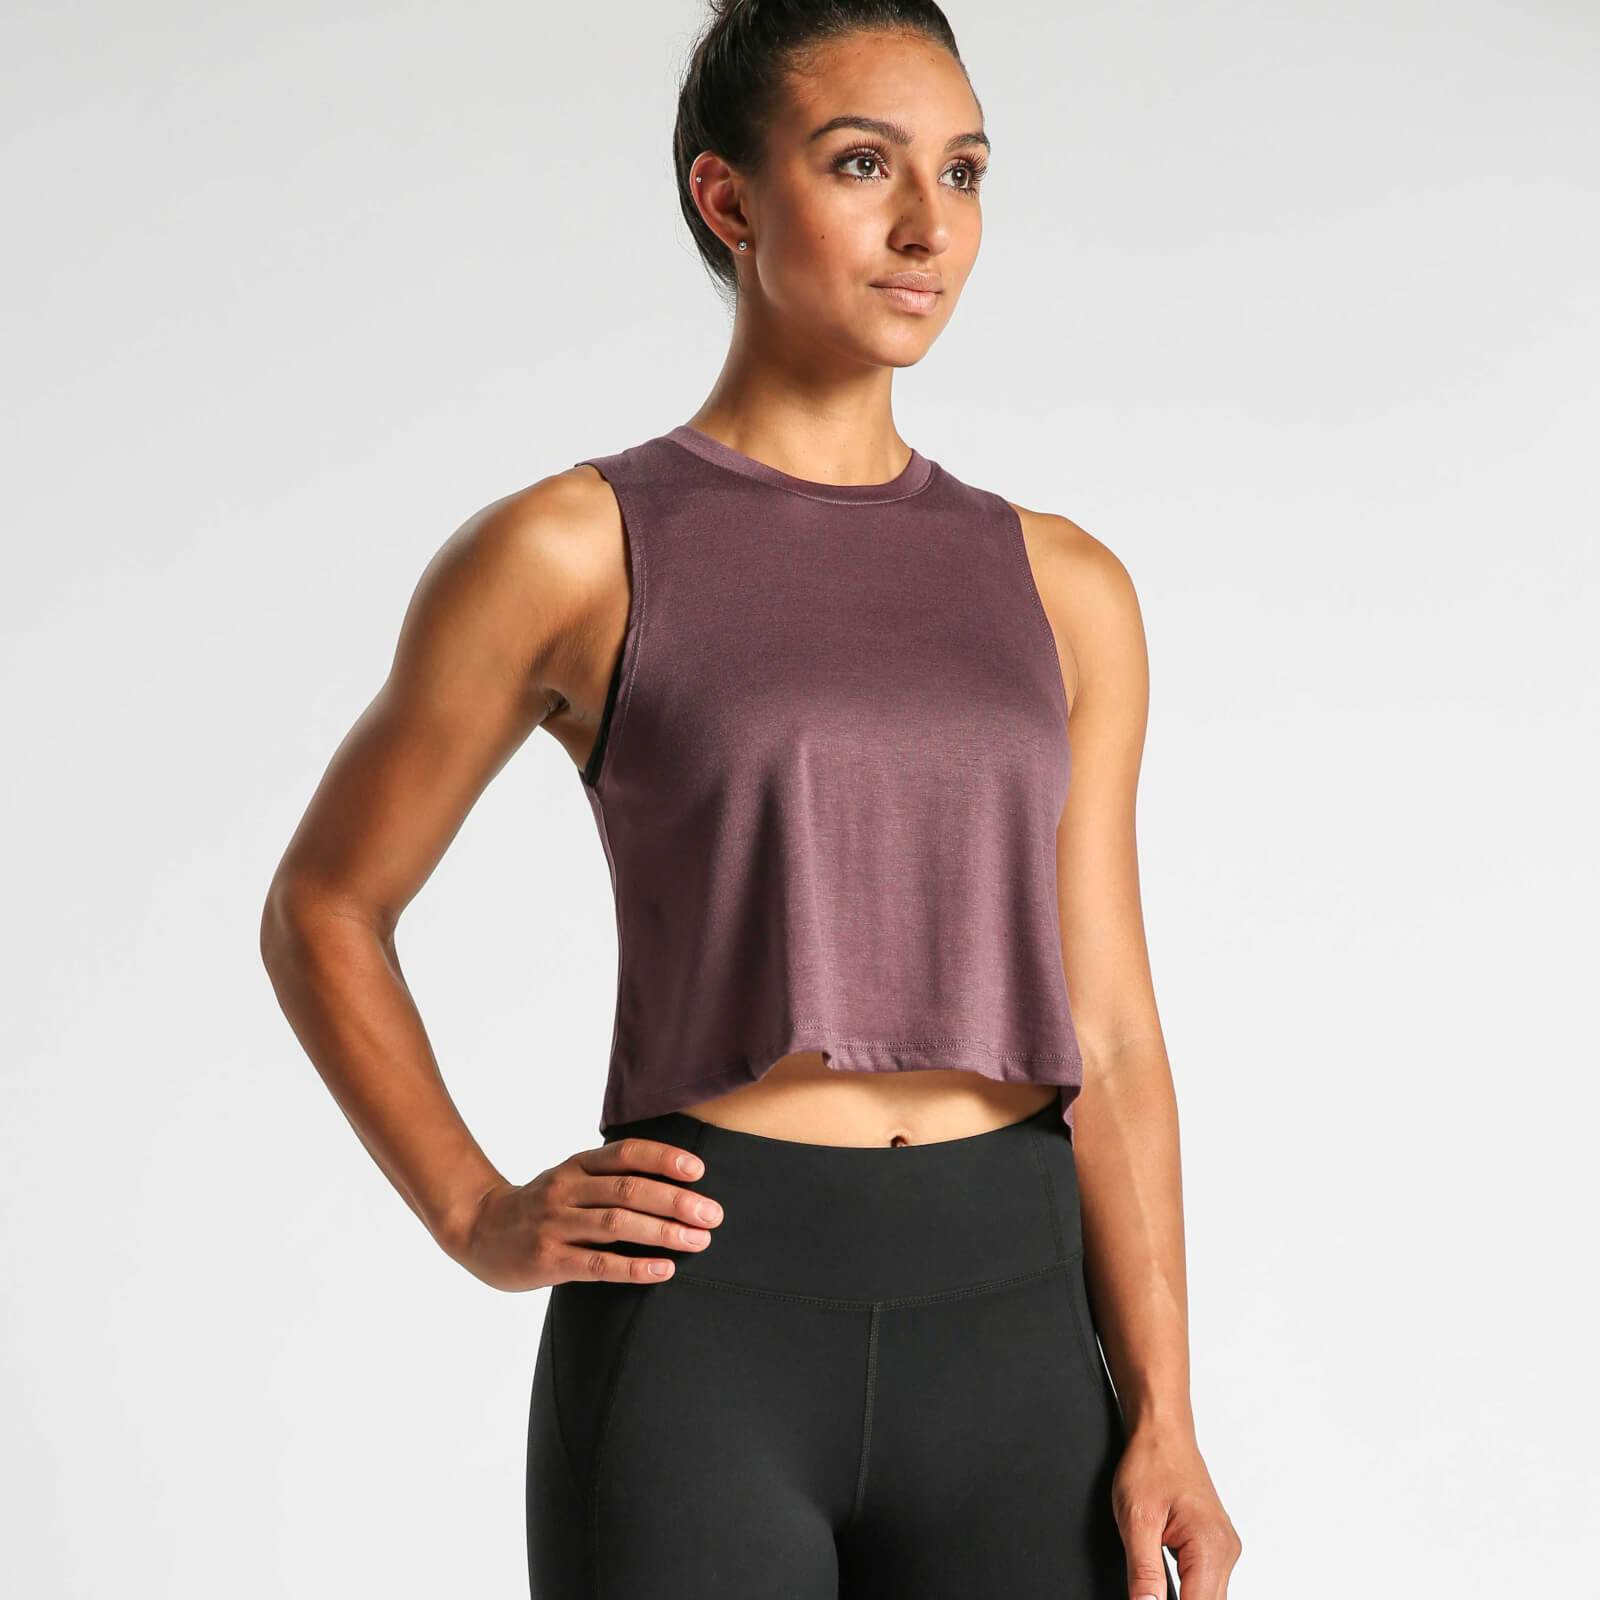 IdealFit Flowy Crop Top - Mauve - L - Purple